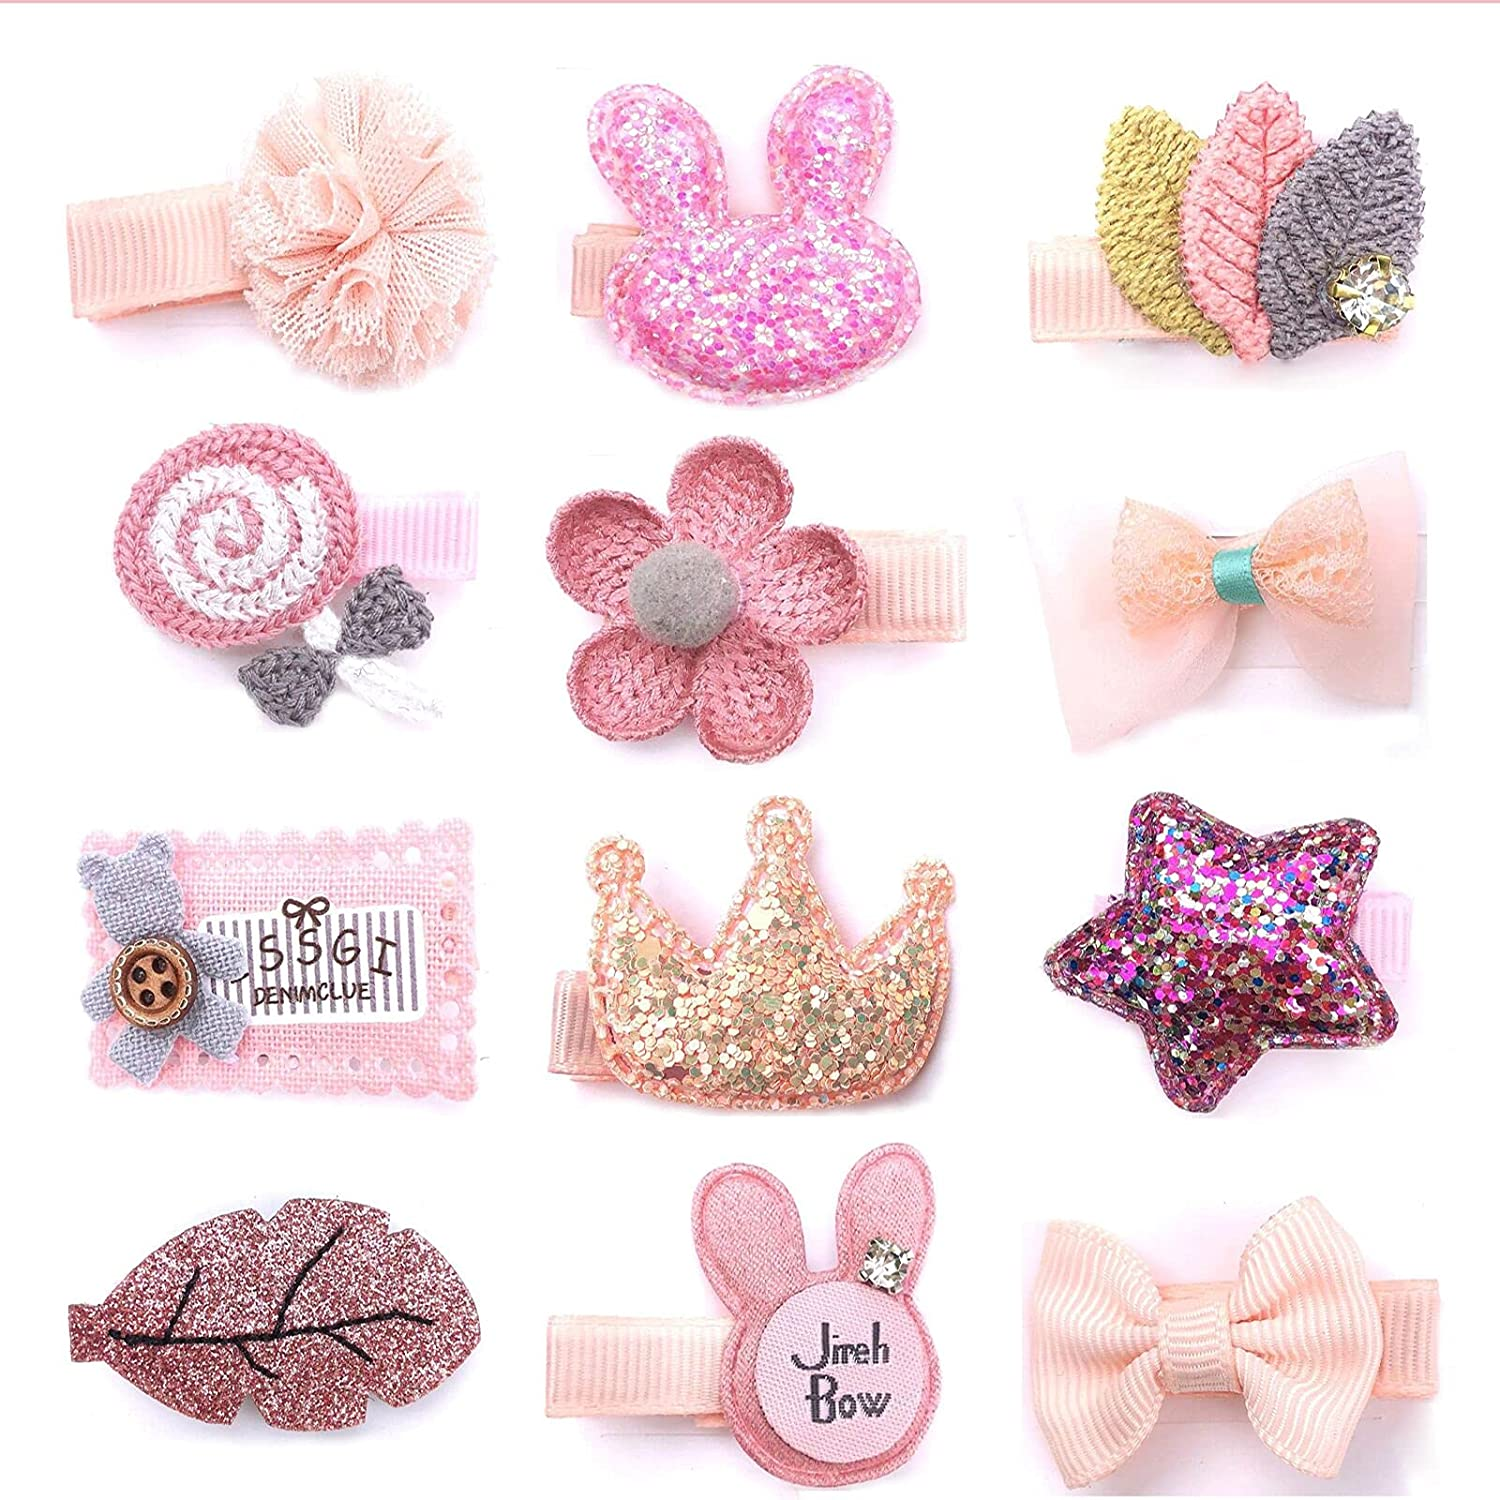 hair clips for babies toddler hair clips Baby Girl's Hair ClipsCute Hair Hairpins Set Cute Hair Bows For Baby Girls Toddlers Baby Girls Hair Accessories Clipsfor Infant and Toddlers